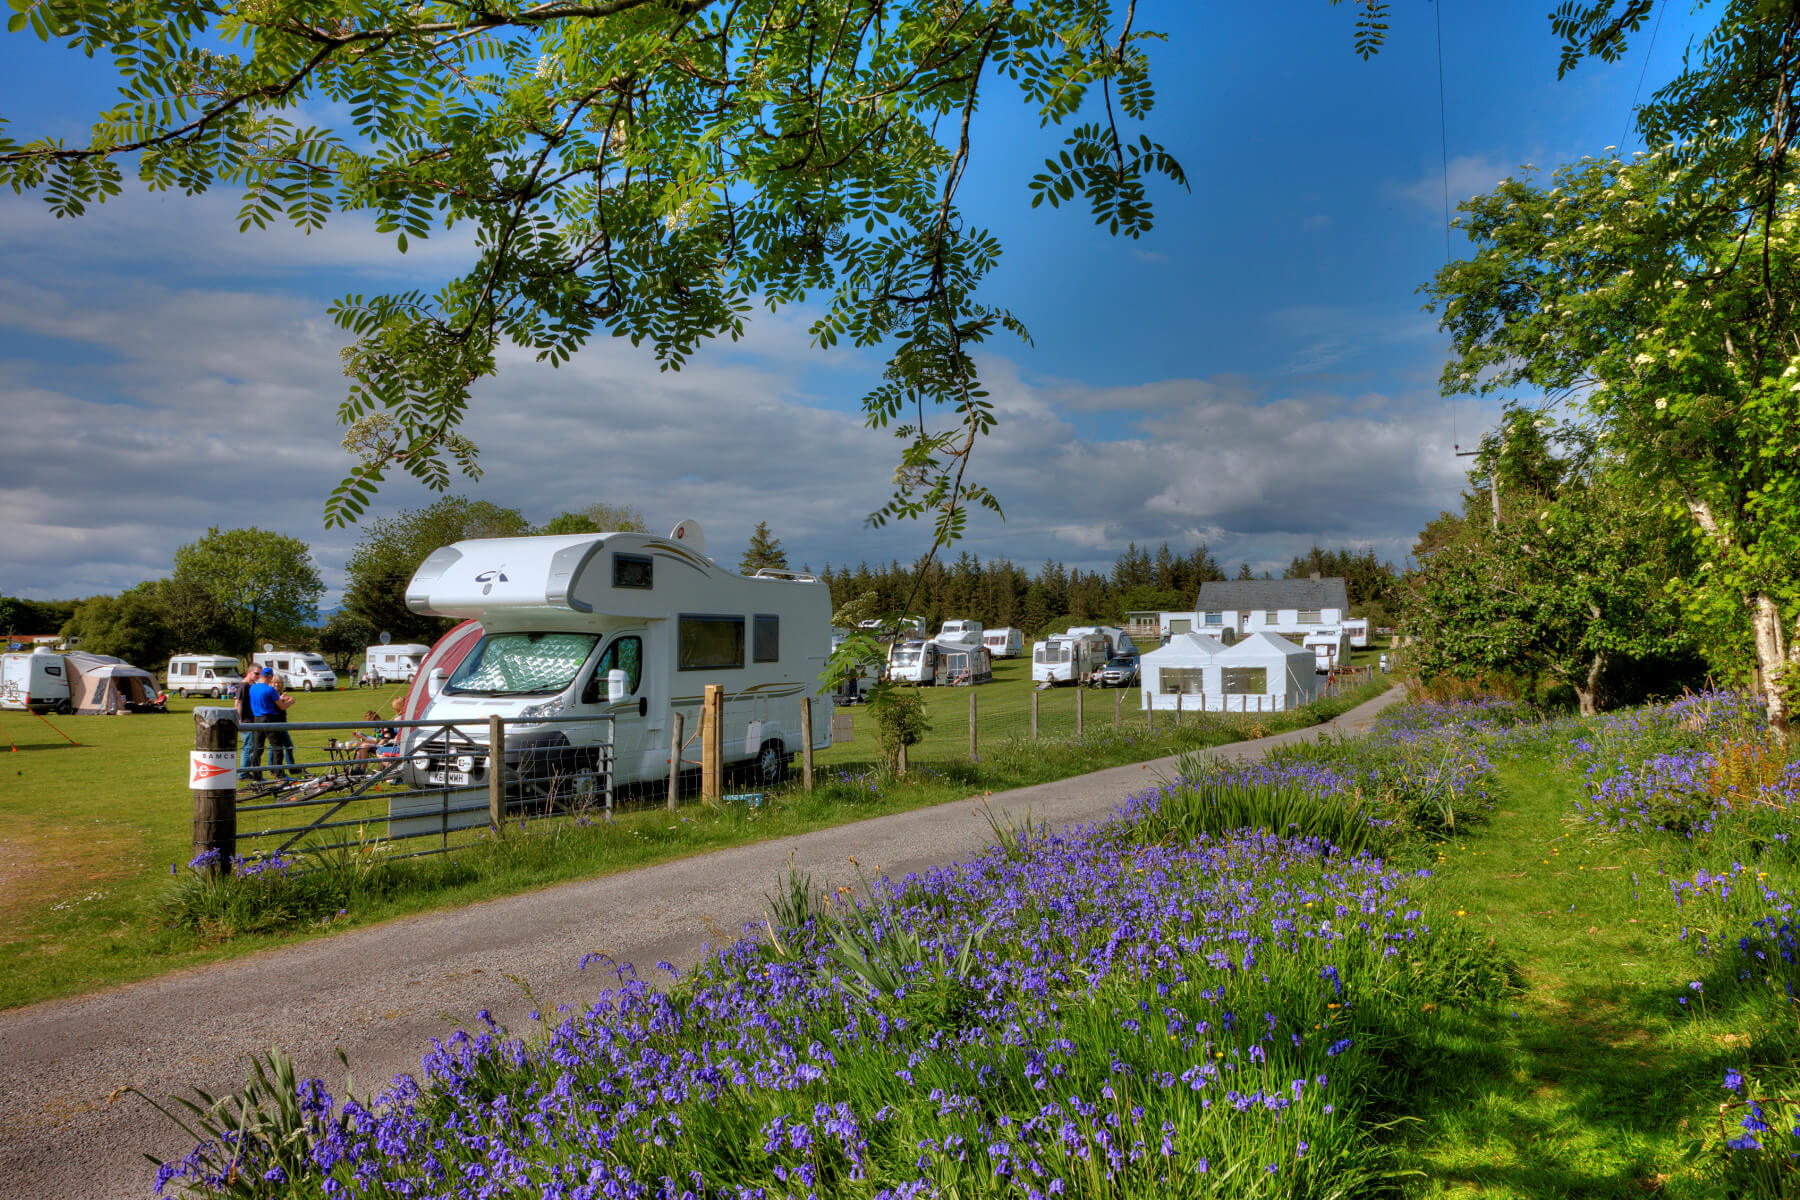 Spacious Motorhome Pitches - Benderloch - Argyll - Scotland